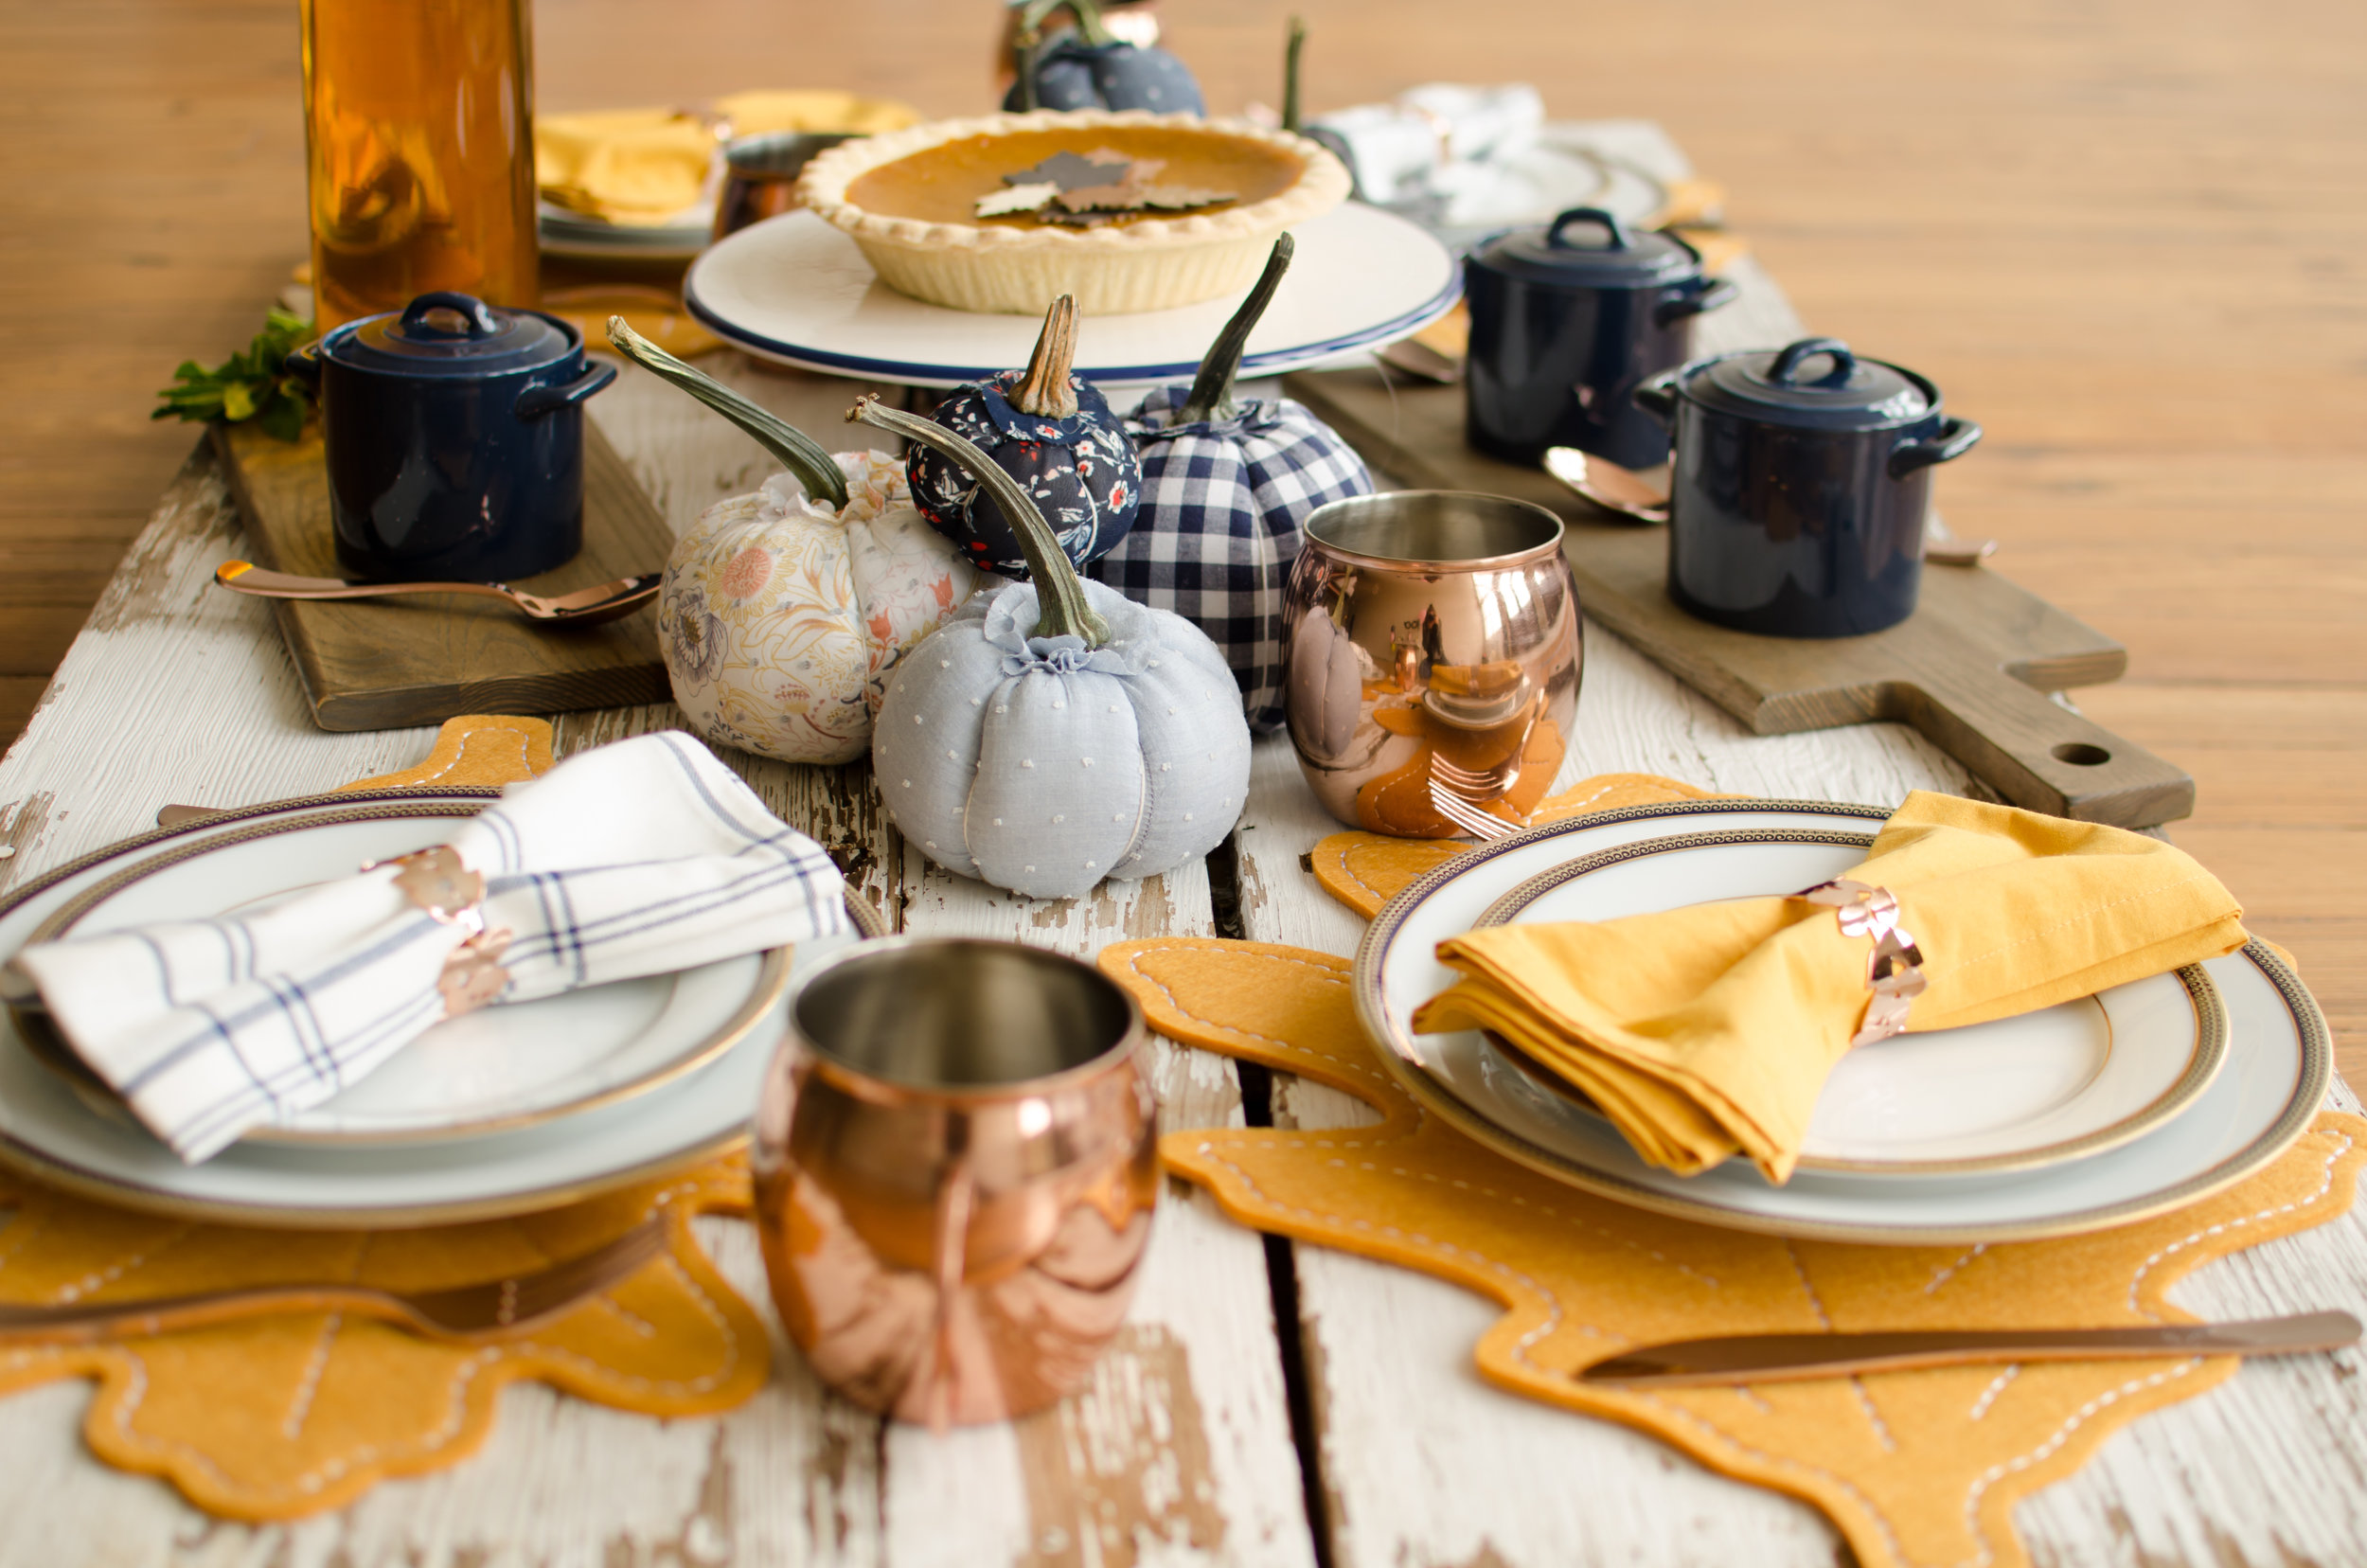 Rustic and Chic Thanksgiving table inspiration in copper and blue with fabric covered pumpkins in a variety of patterns for extra fun on the tablescape. See more Thanksgiving Party Ideas from party planner, Mint Event Design in Austin, Texas on www.minteventdesign.com #thanksgiving #thanksgivingdecorations #tablescape #thanksgivingtable #pumpkins #tablesettings #fallparty